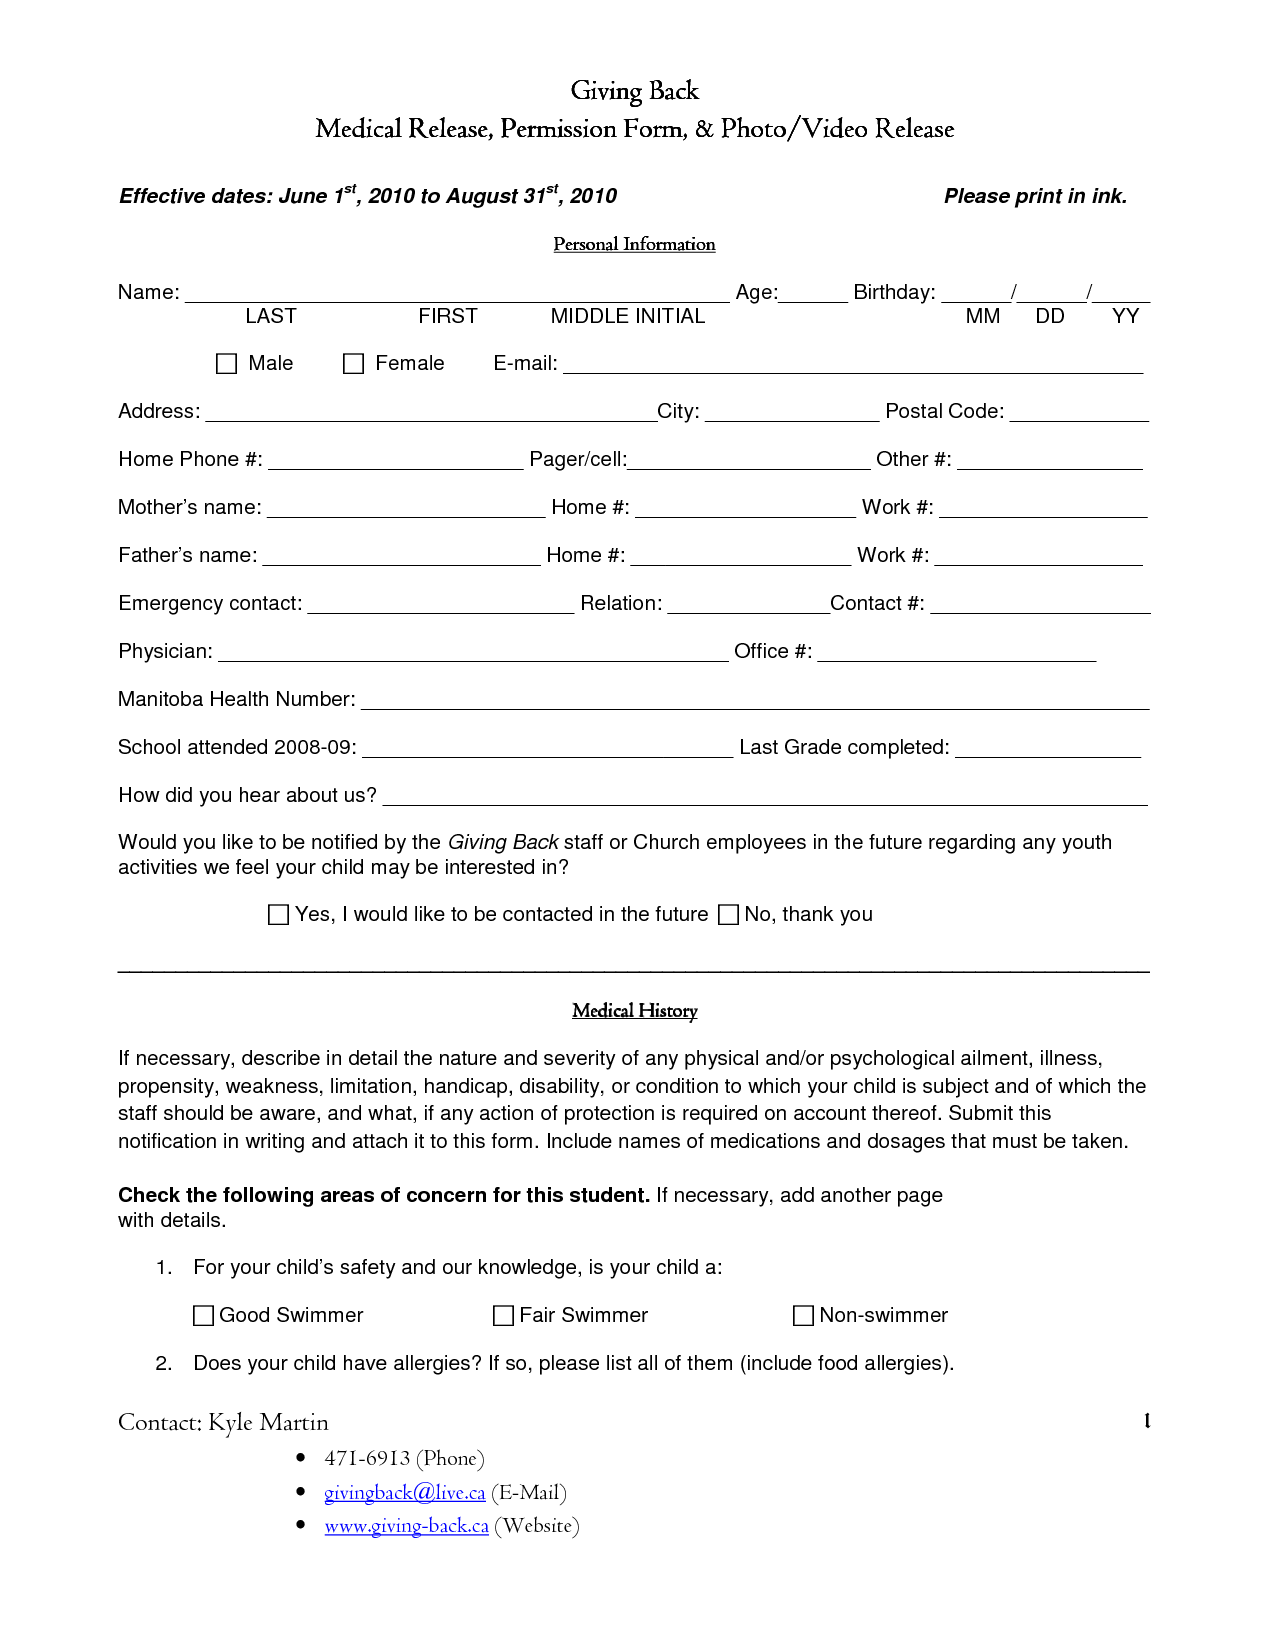 Back to Work Medical Release Form | Charting, Tracking ...